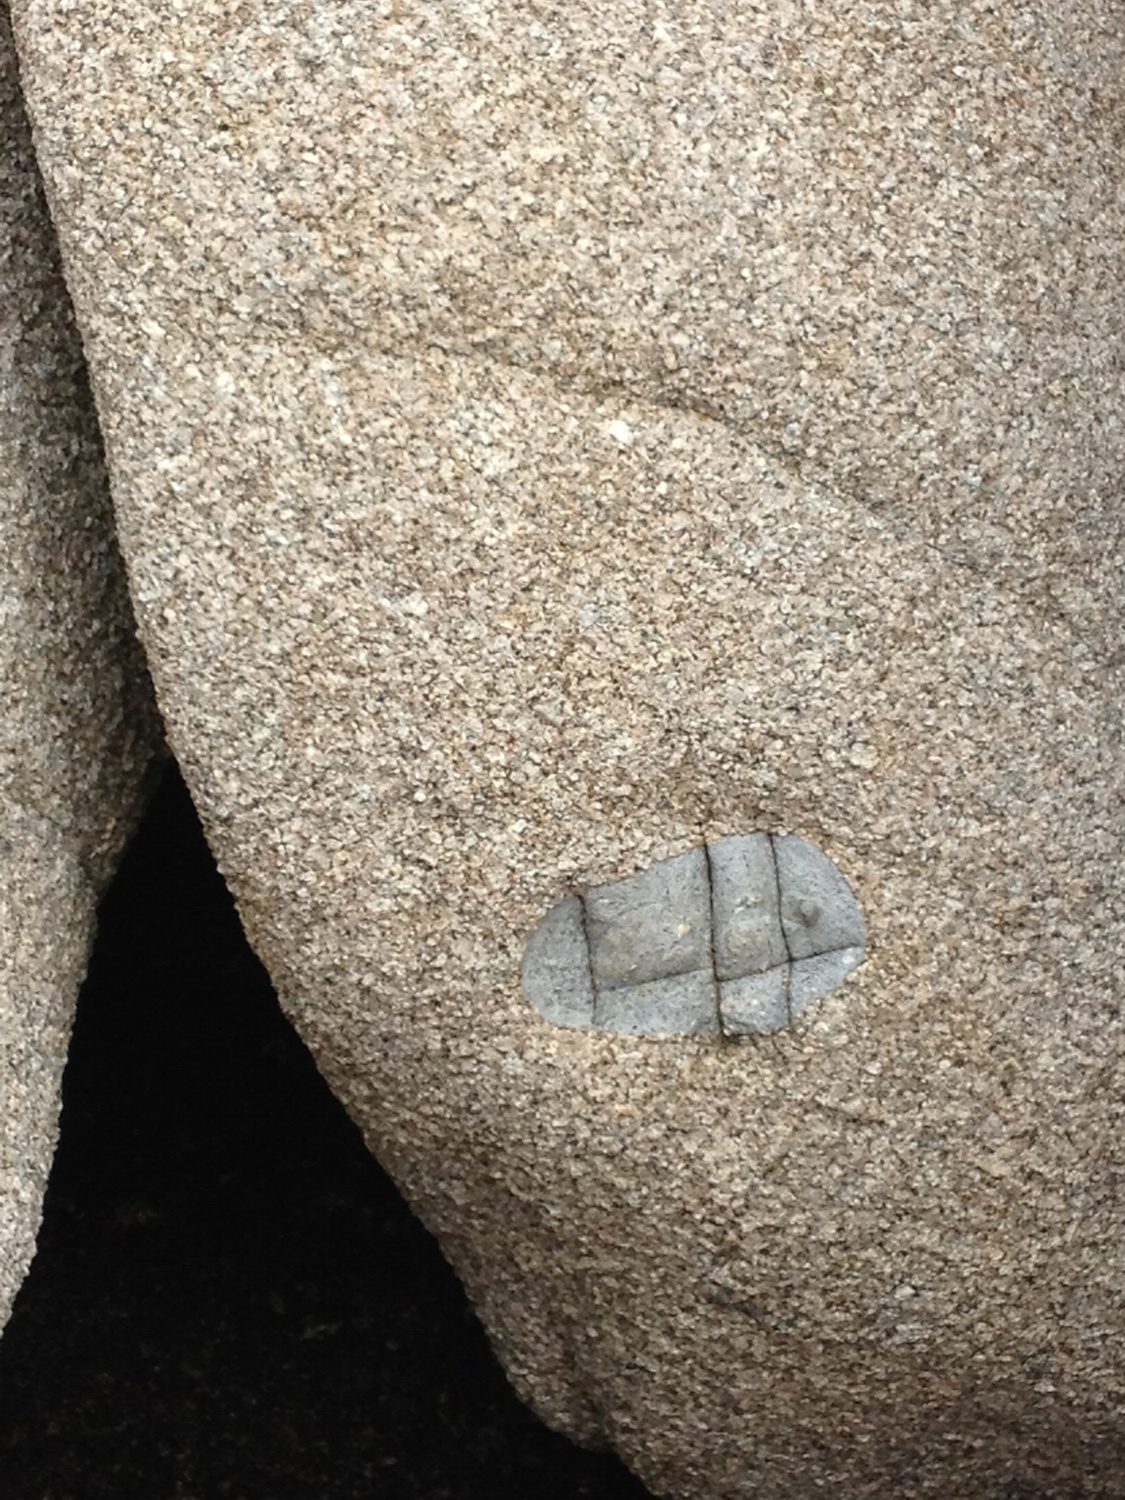 xenolith - Magma of different composition mixed with the granite to form these ubiquitous enclaves around the island